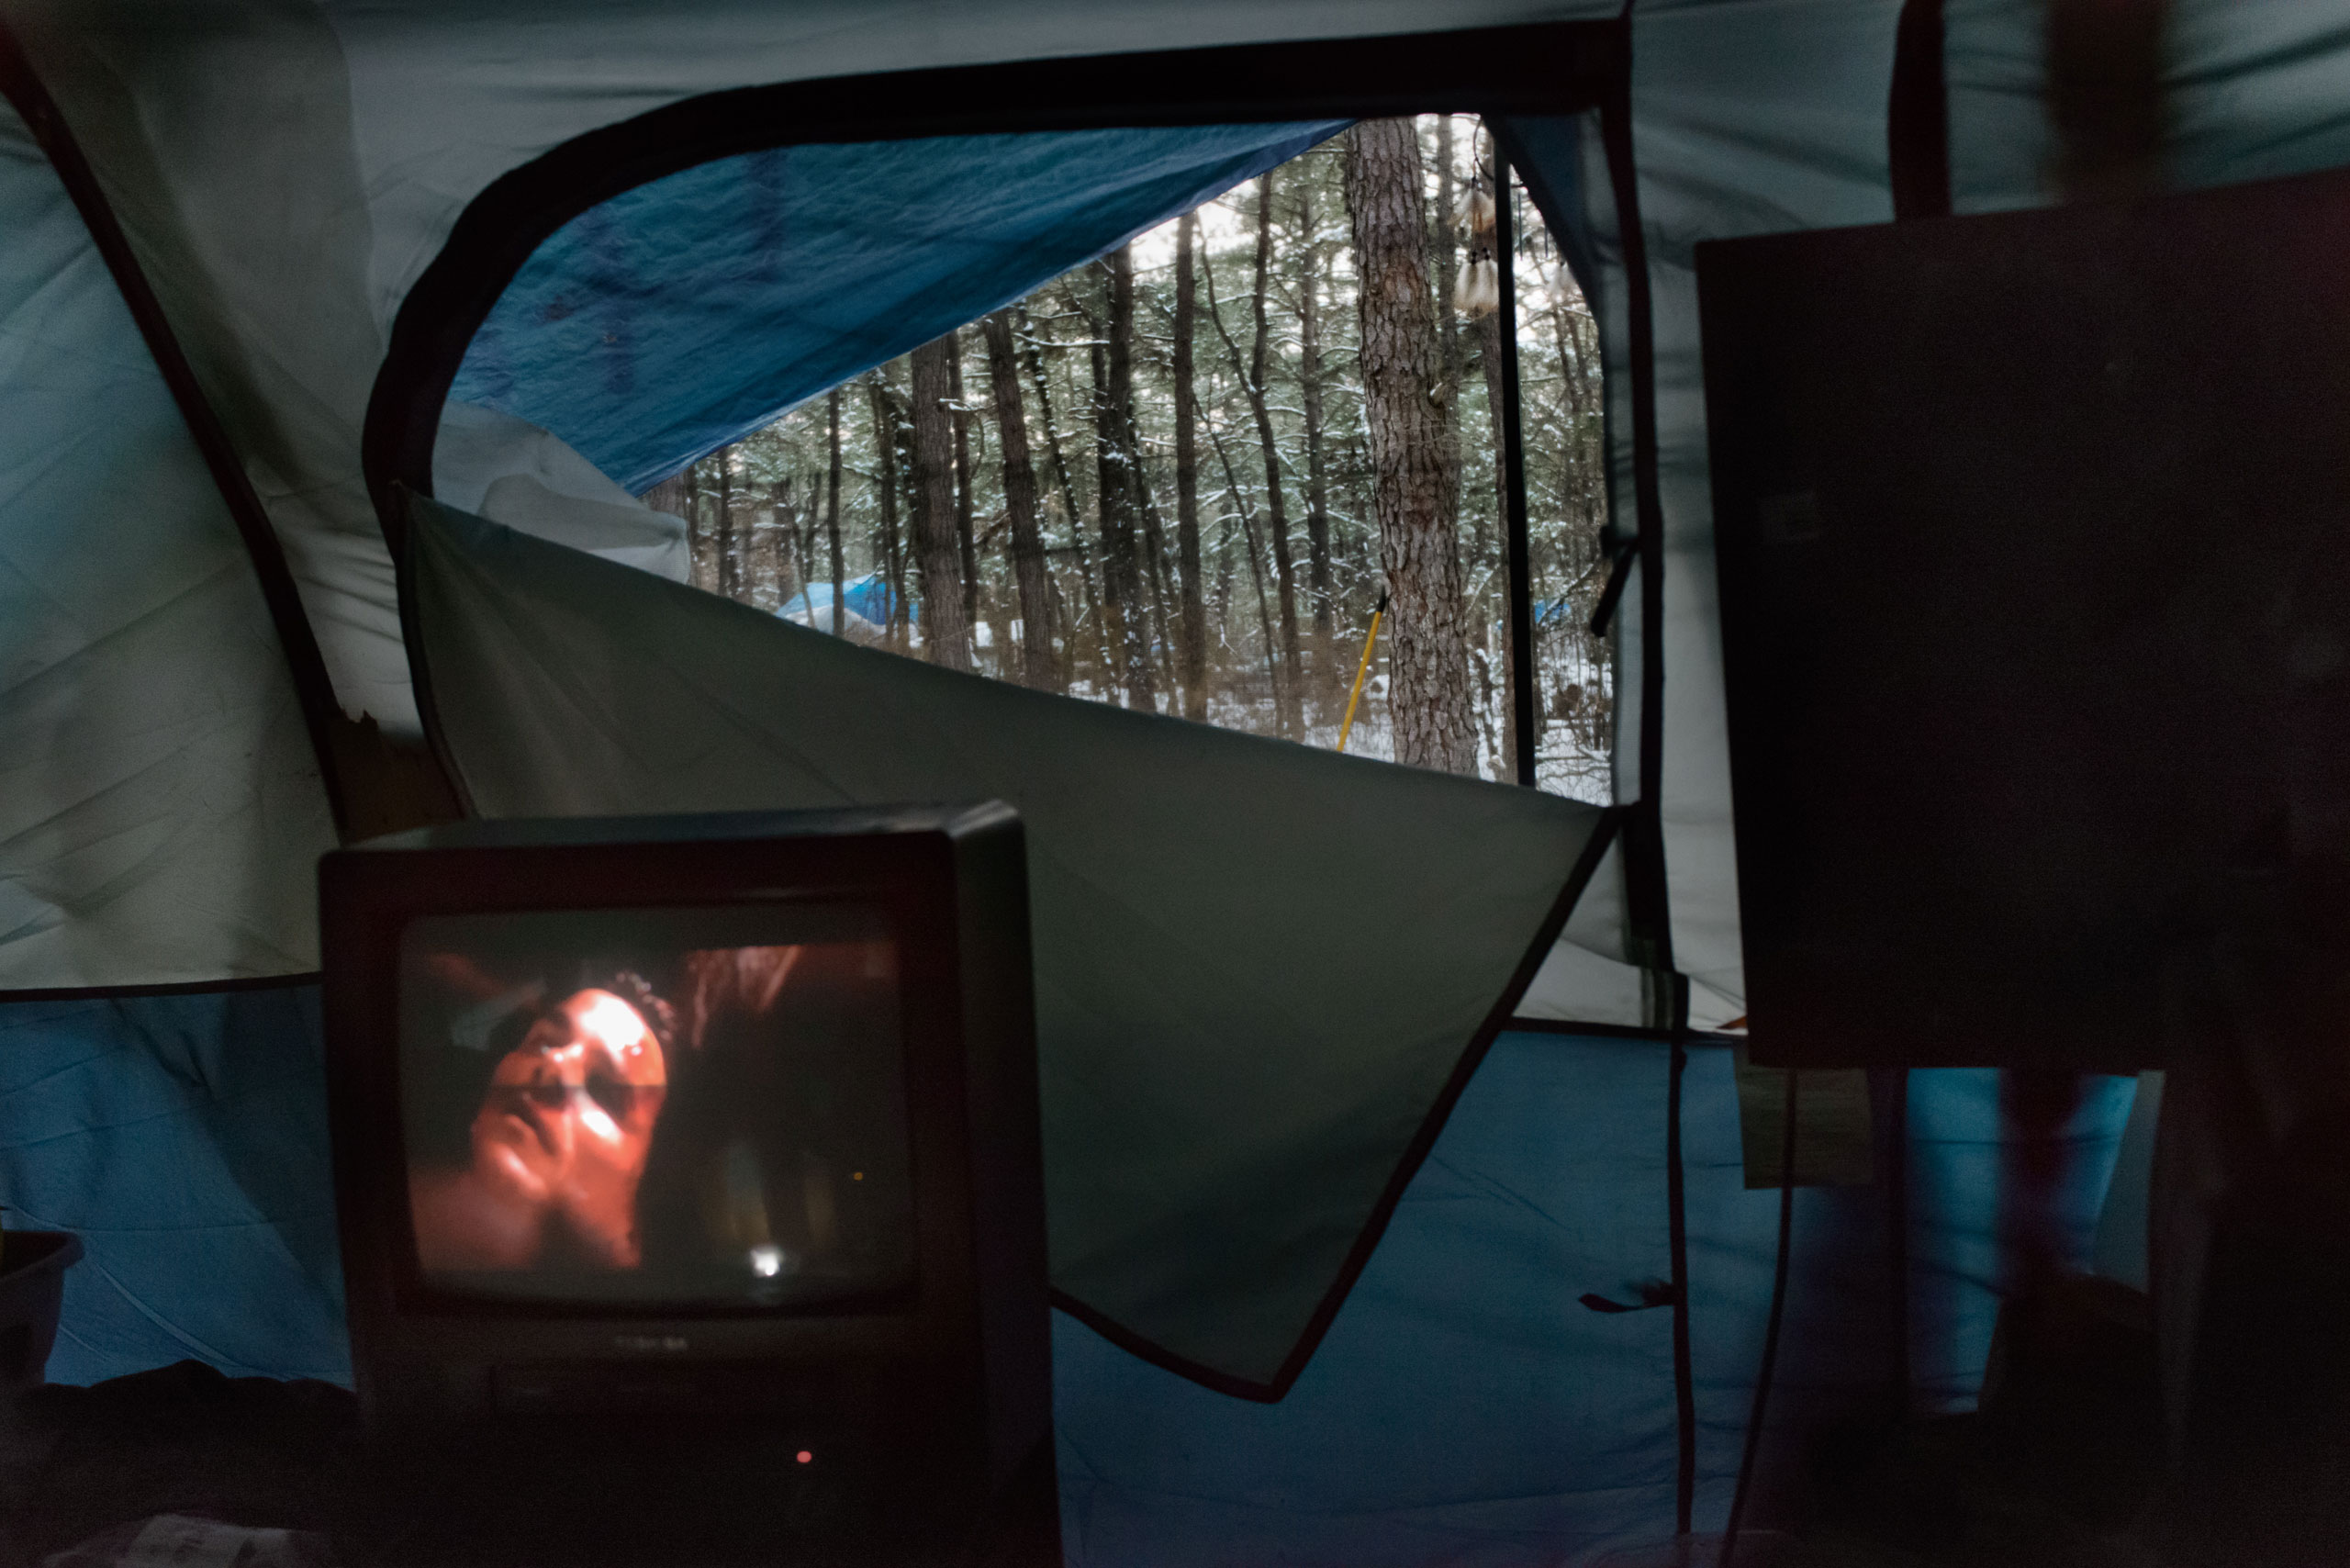 Tent City residents watch the latest batman film on DVD powered by a generator, March 3, 2014.